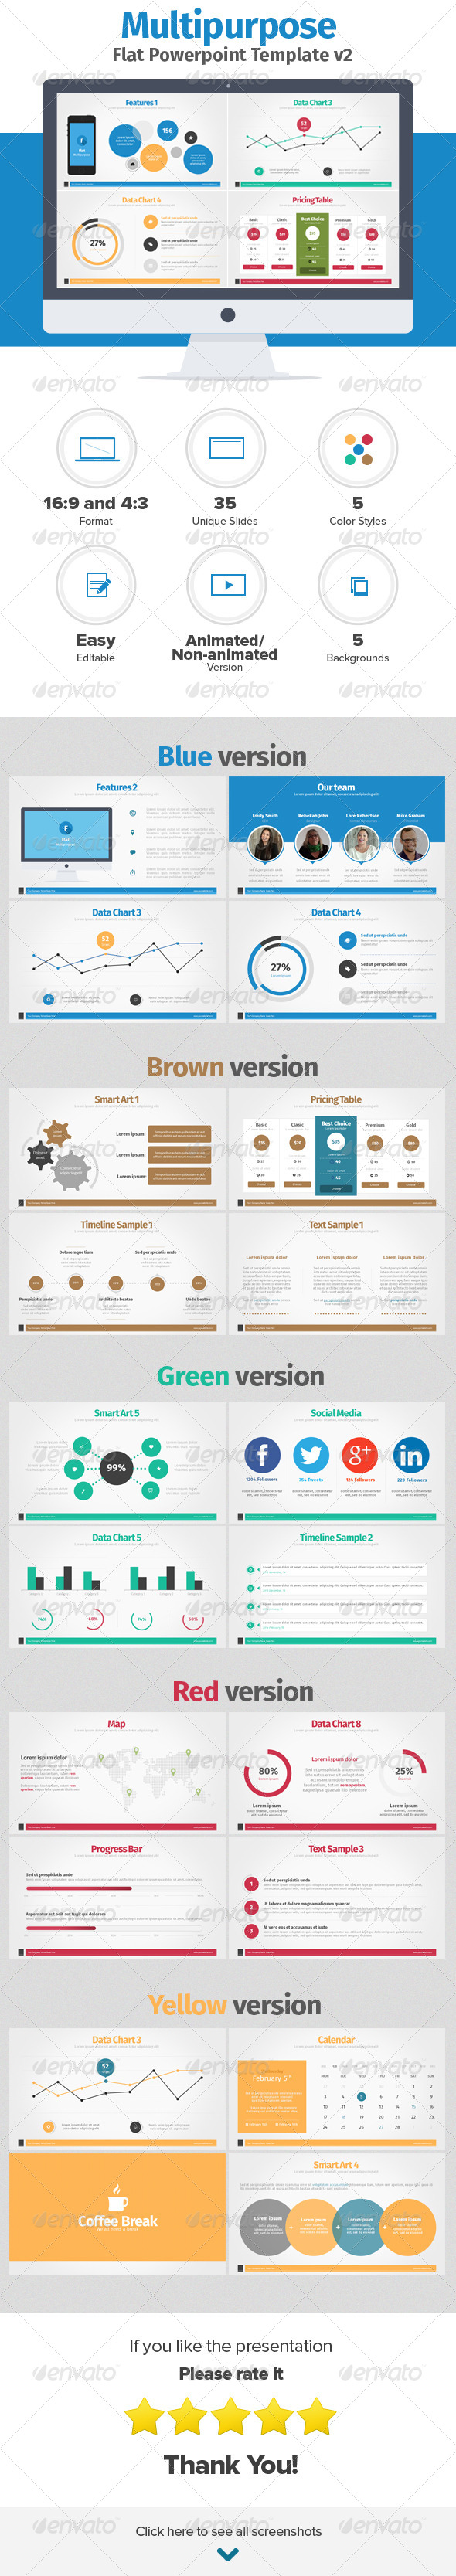 GraphicRiver Multipurpose Flat Powerpoint Presentation v2 6970058